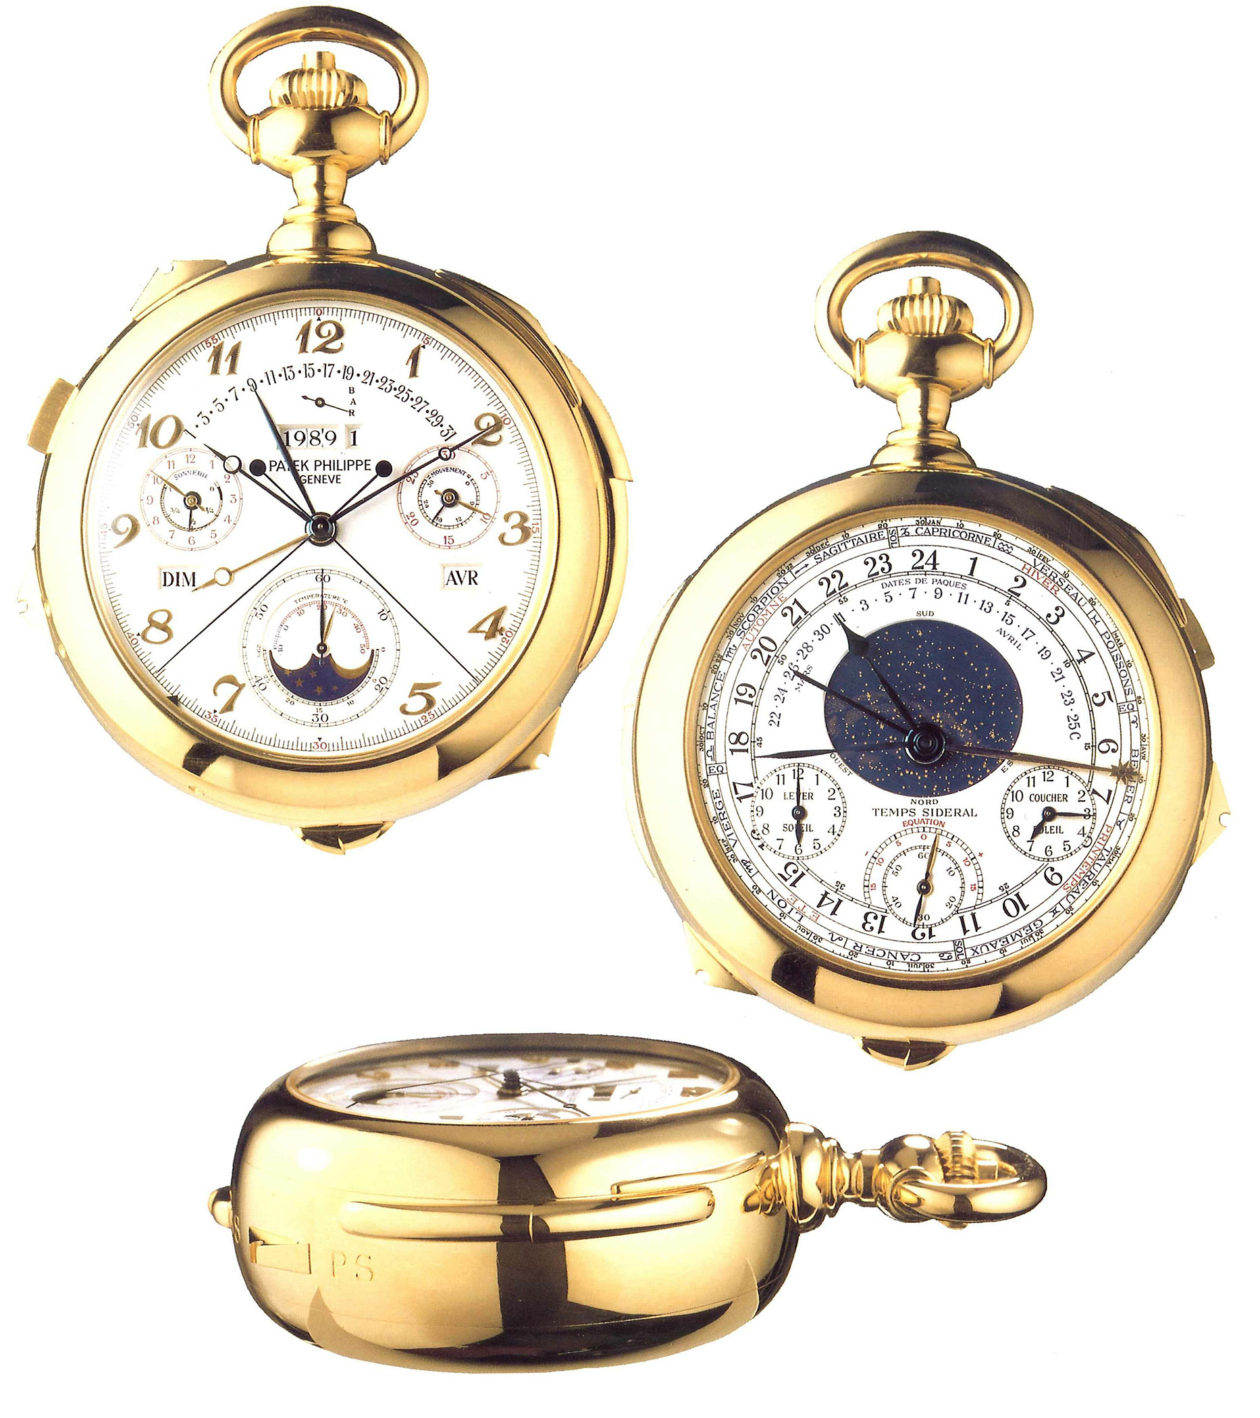 Patek Philippe Calibre 89 / foto: Antiquorum